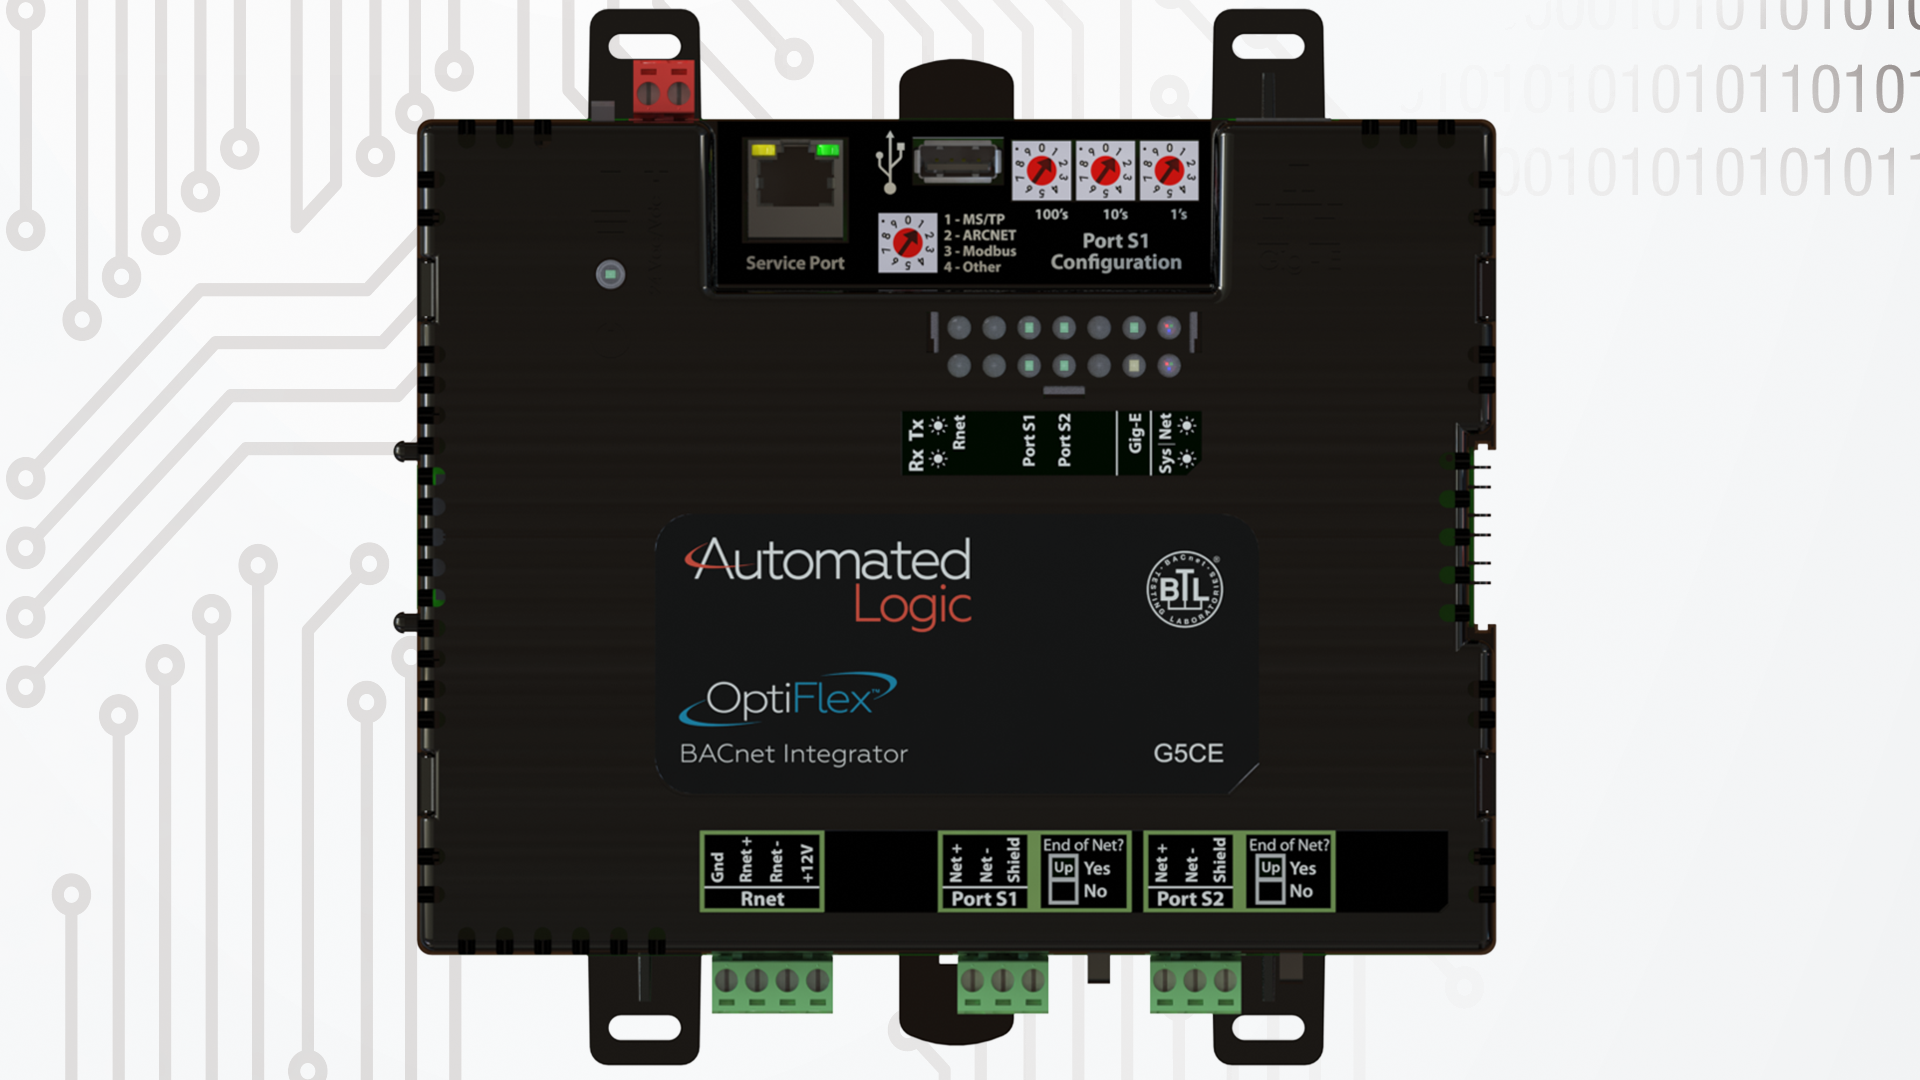 OptiFlex-BACnet-Integrator-model-G5CE-top-view